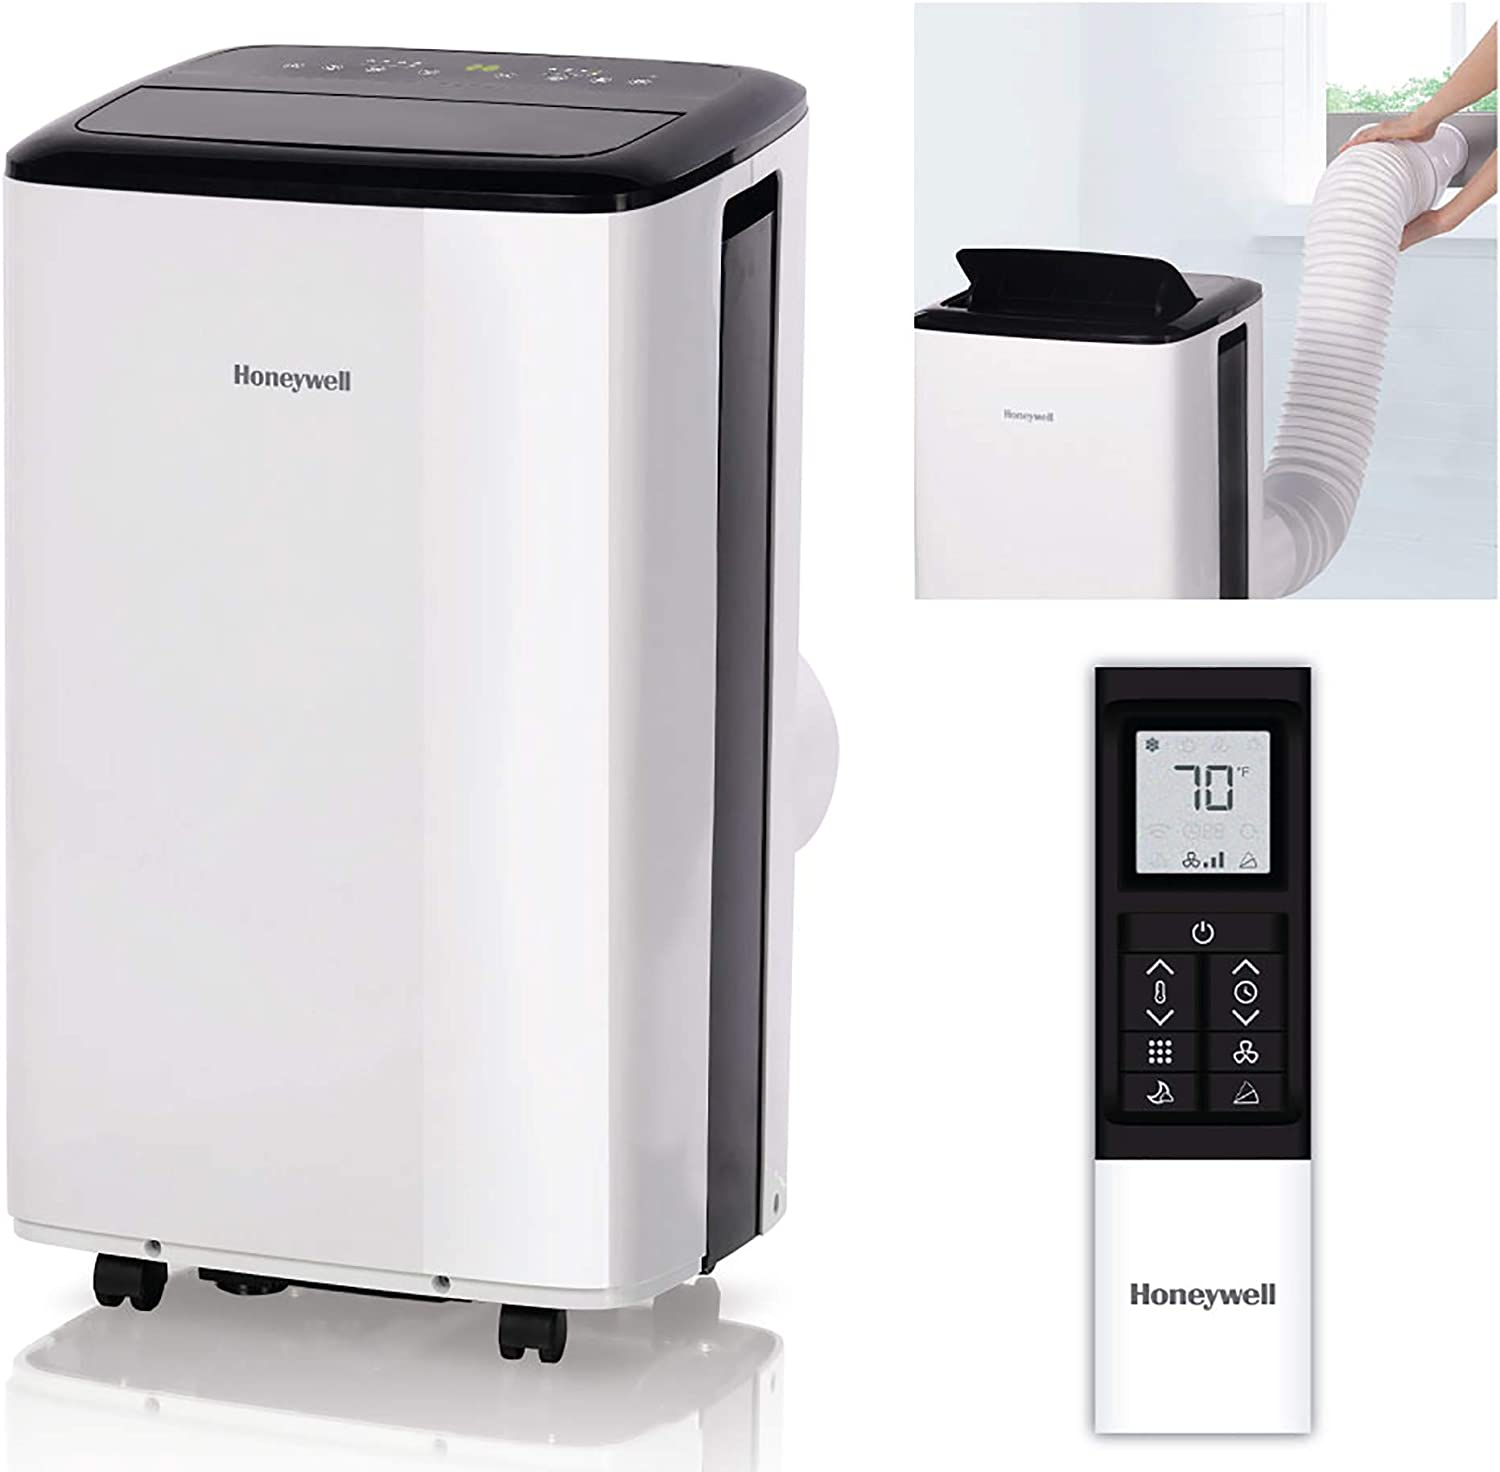 Honeywell 10,000 BTU Portable Air Conditioner with WiFi, White